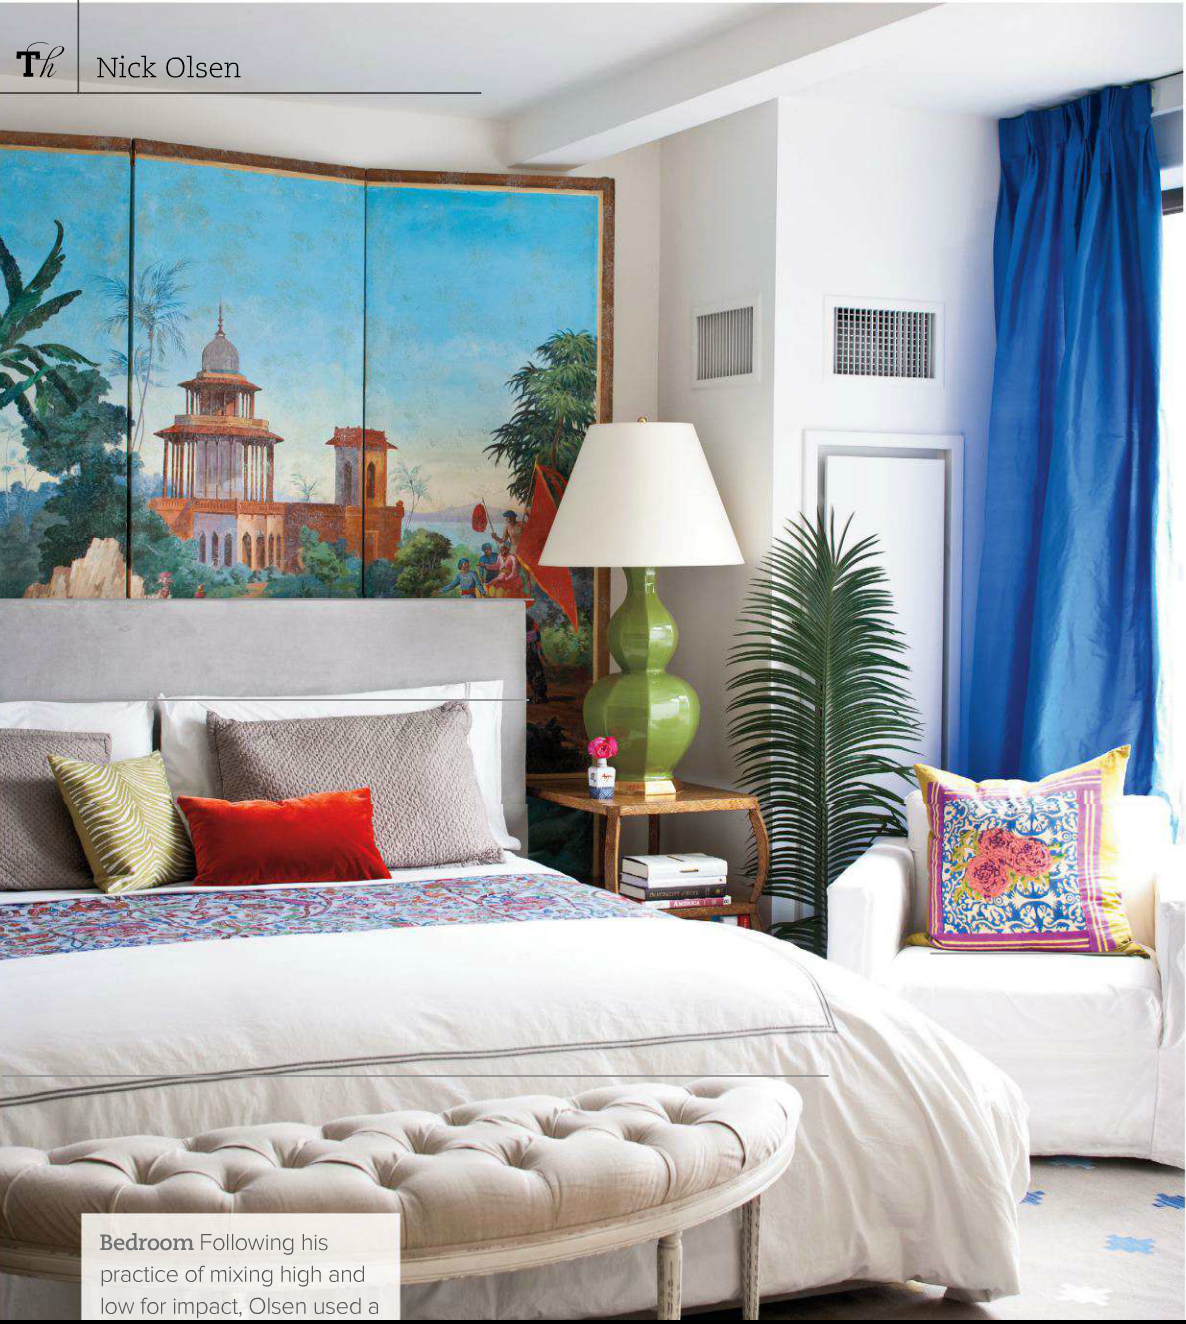 Exotic Dcor for Summer: How to Get Nick Olsen's Tropical Beach Room Look